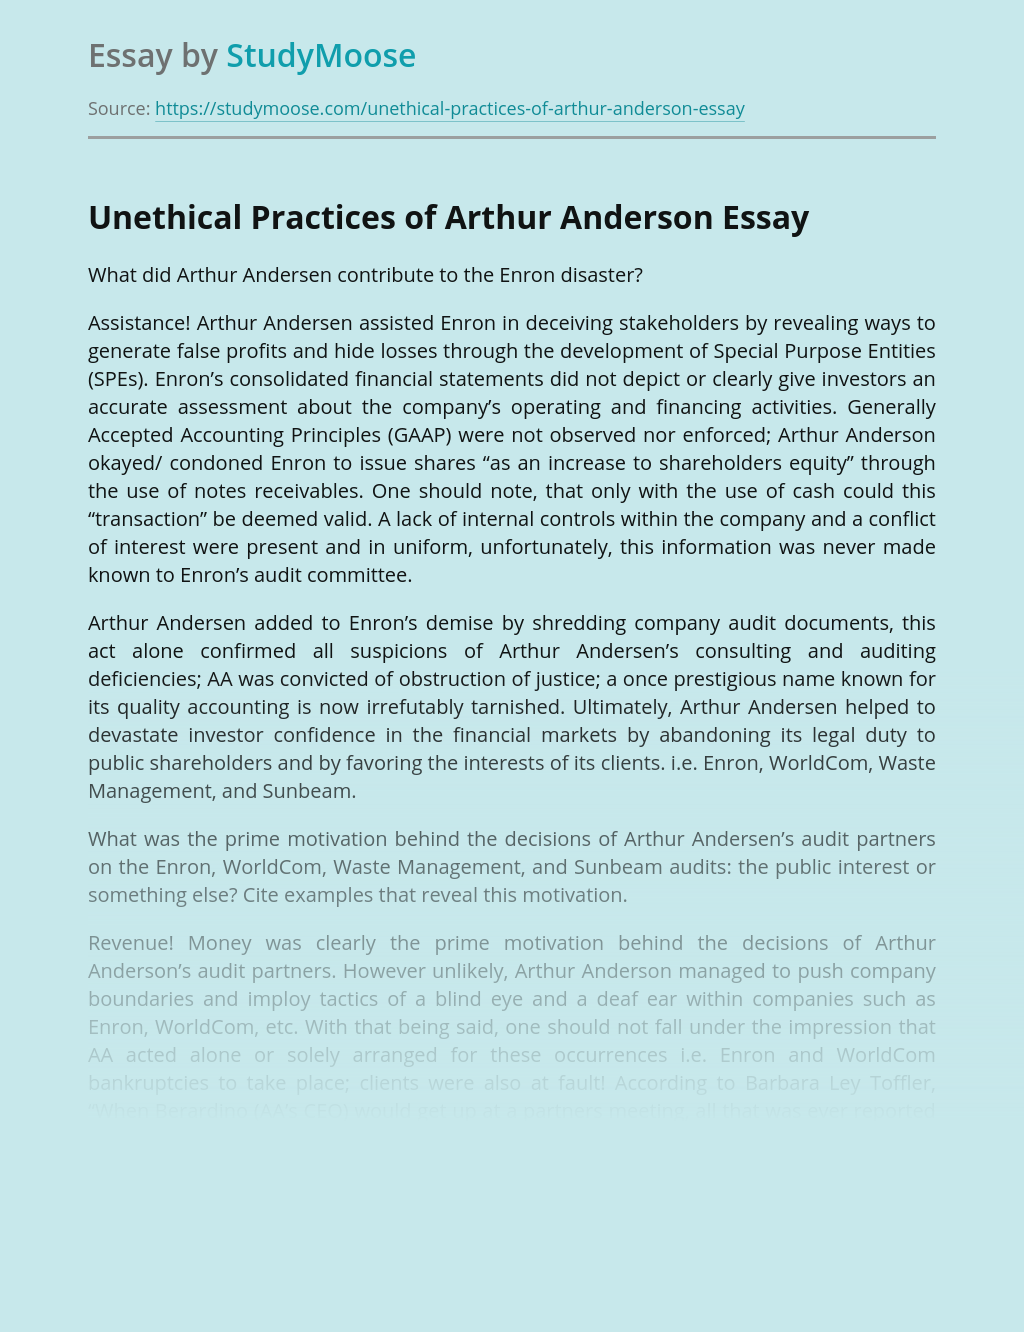 Unethical Practices of Arthur Anderson